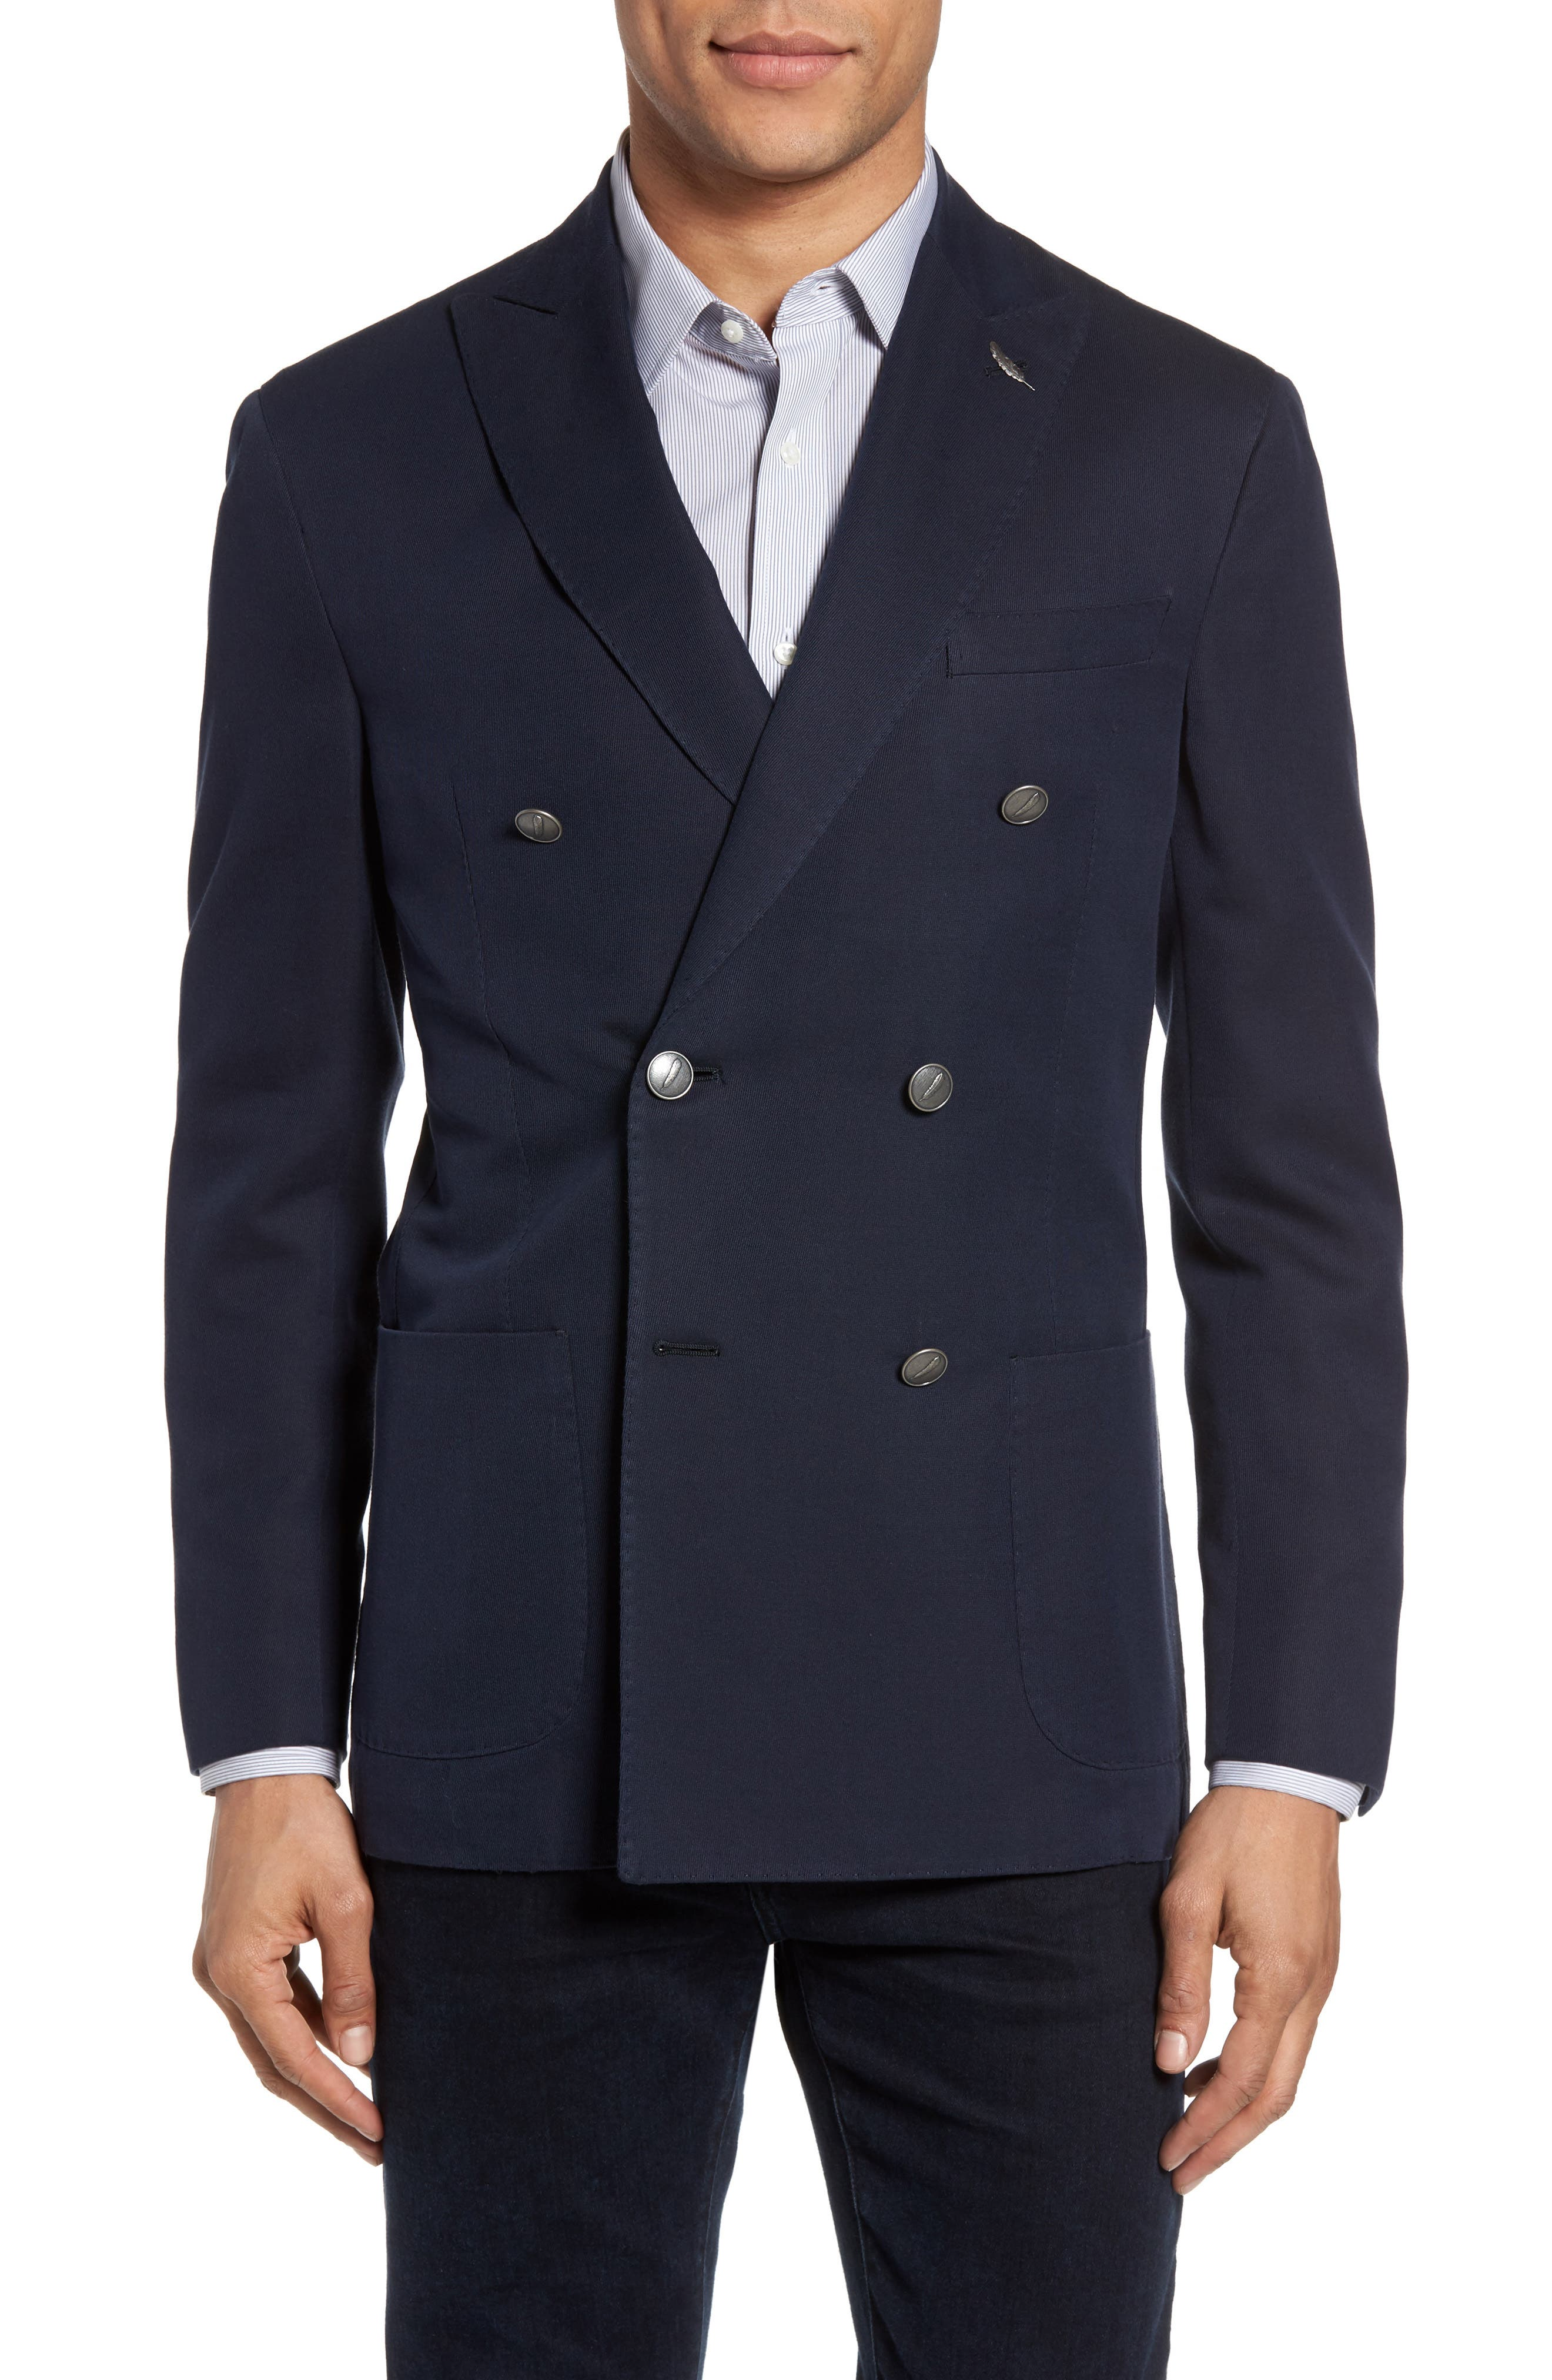 Classic Fit Double Breasted Blazer,                             Main thumbnail 1, color,